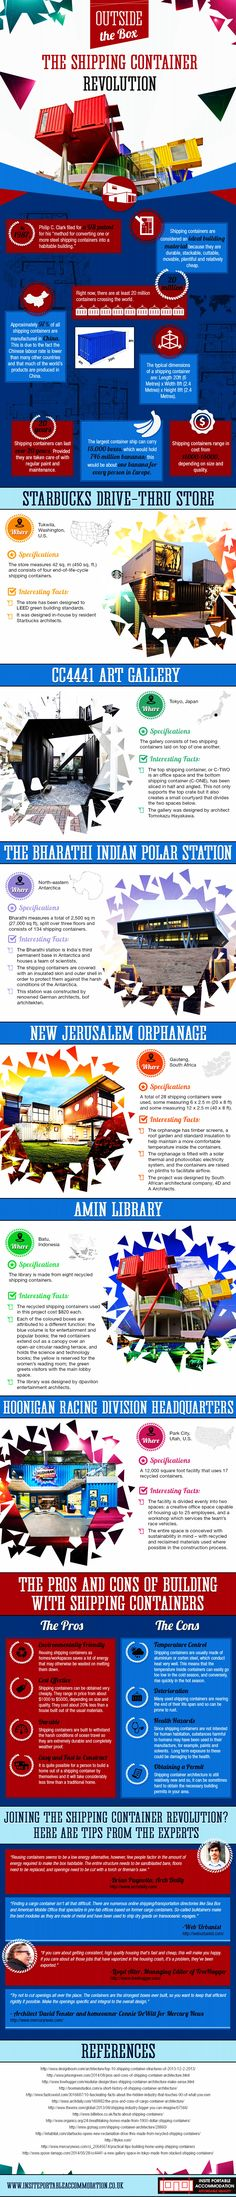 Building Houses and Commercial Offices with Shipping Containers Infographic - architecture